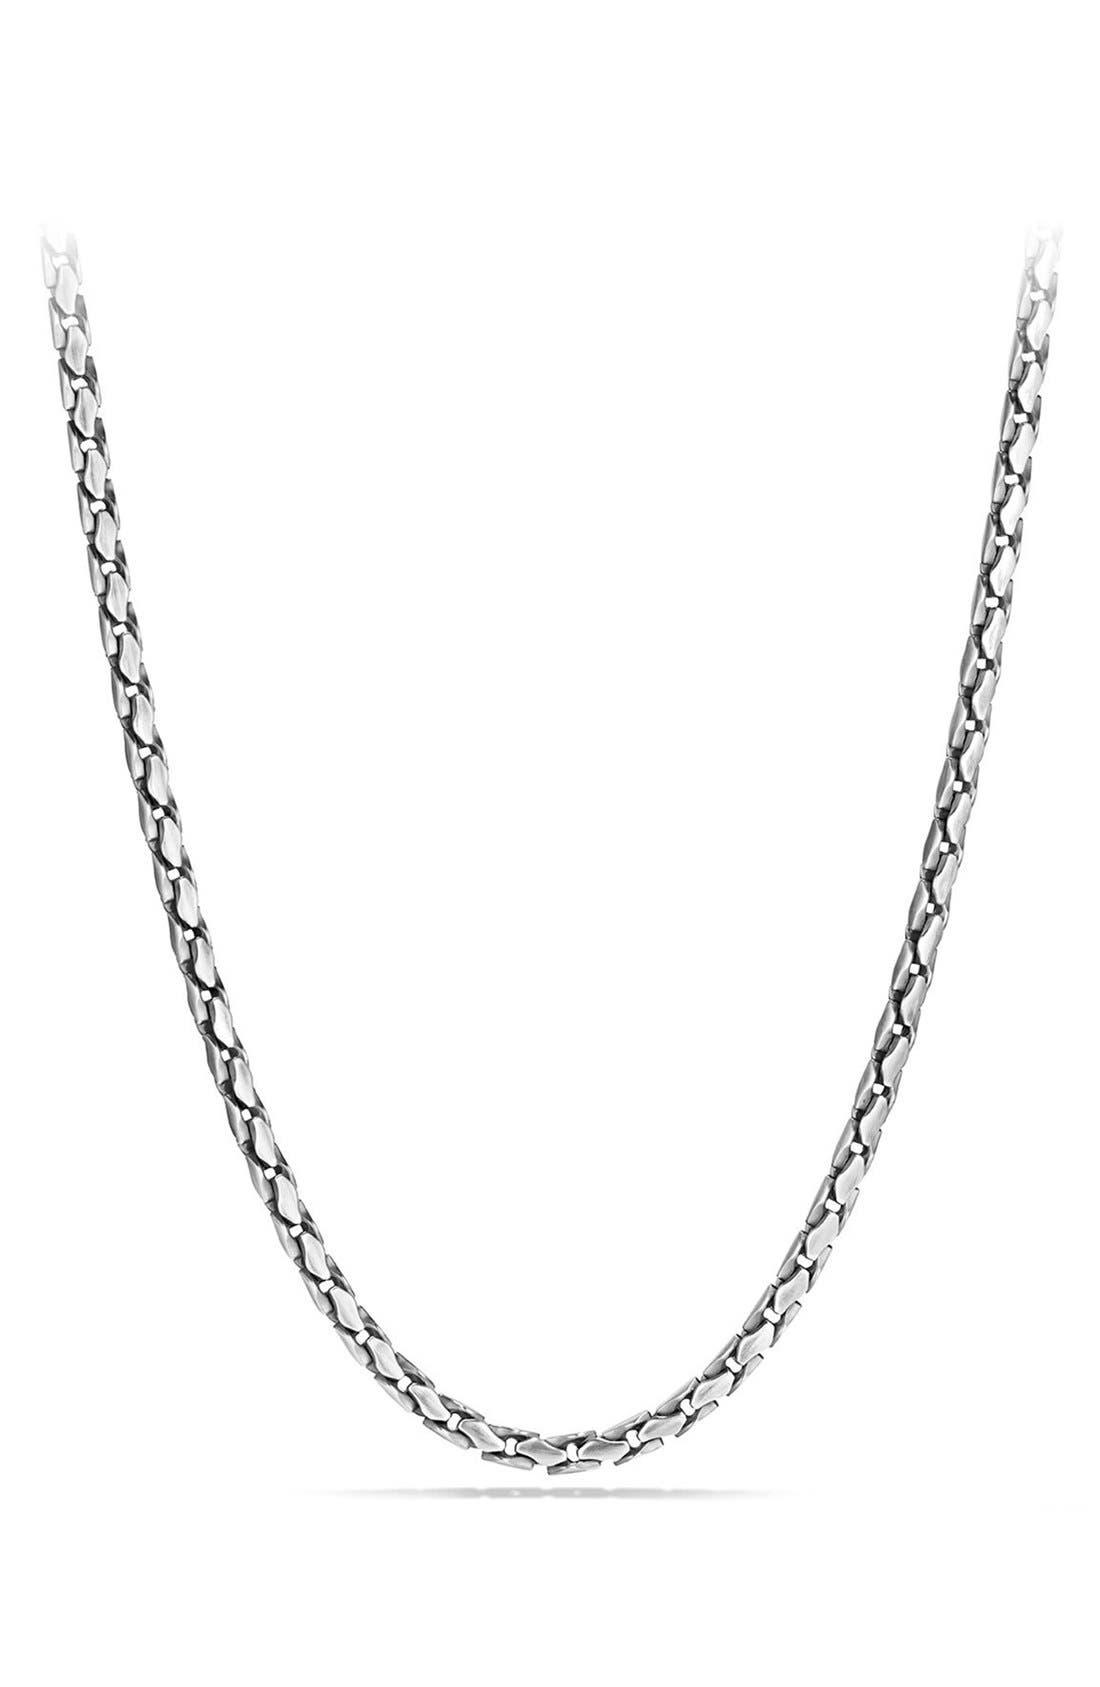 Main Image - David Yurman 'Chain' Small Fluted Chain Necklace, 5mm